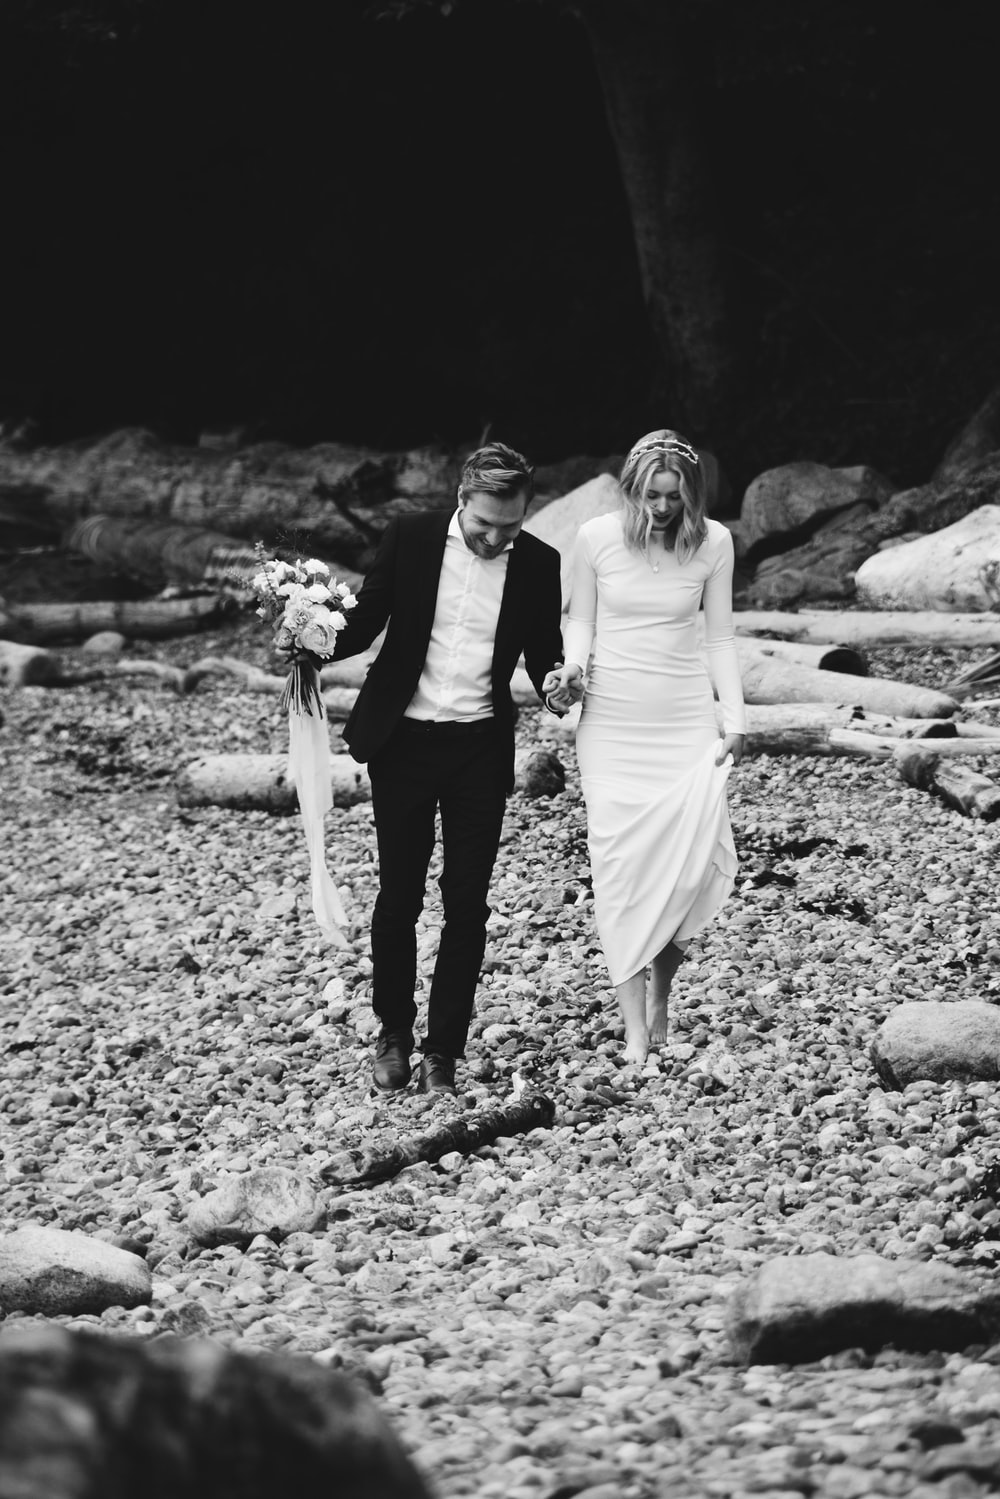 grayscale photo of bride and groom walking